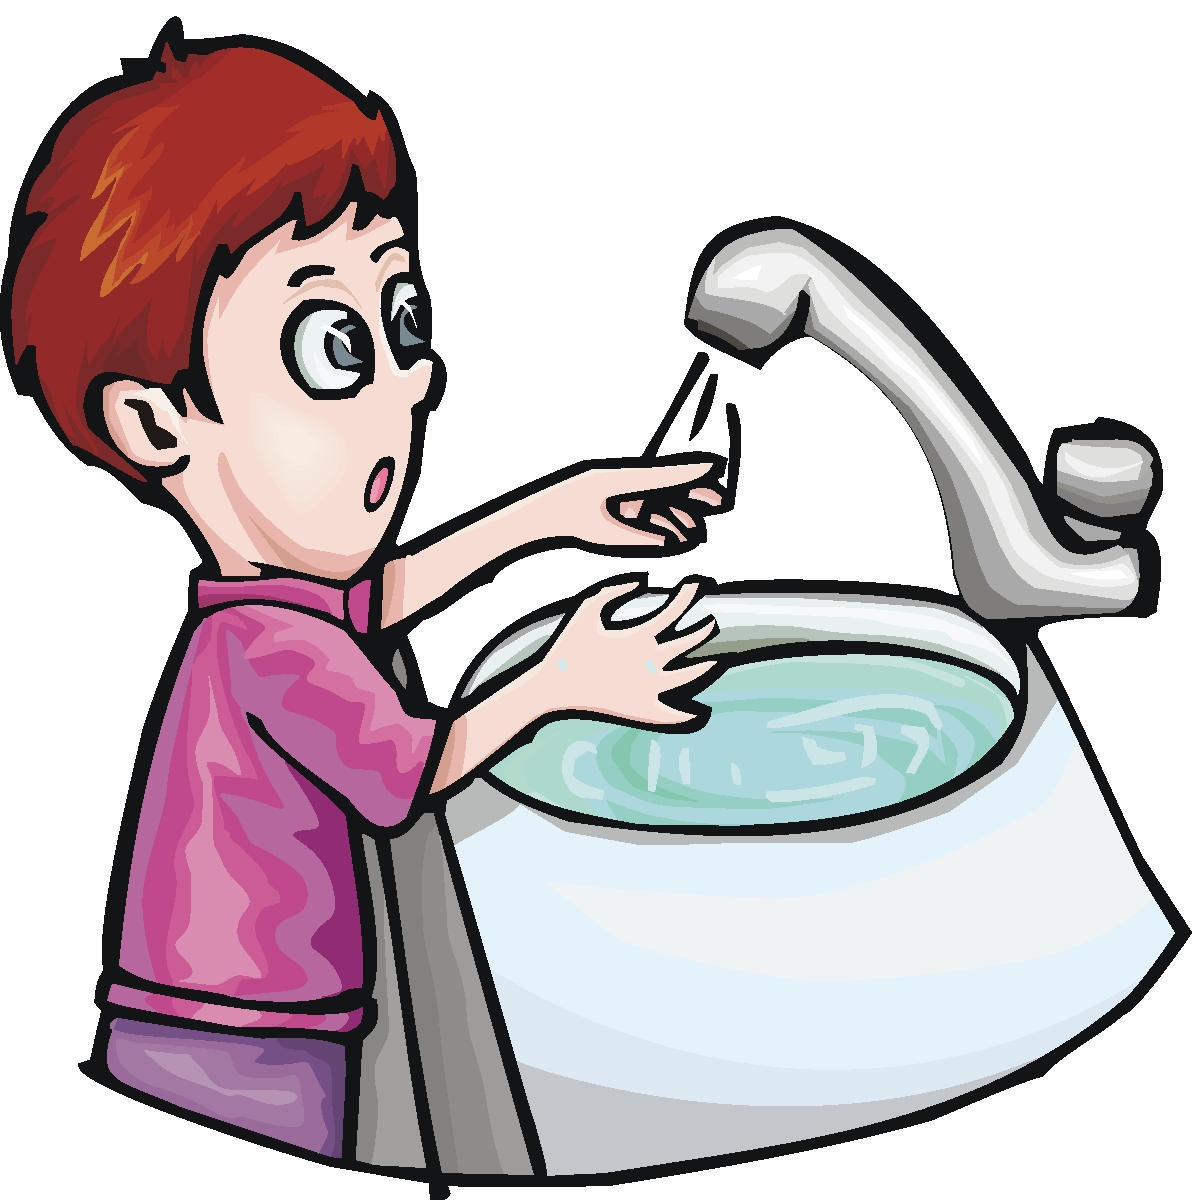 Wash Your Hands Clipart - ClipArt Best